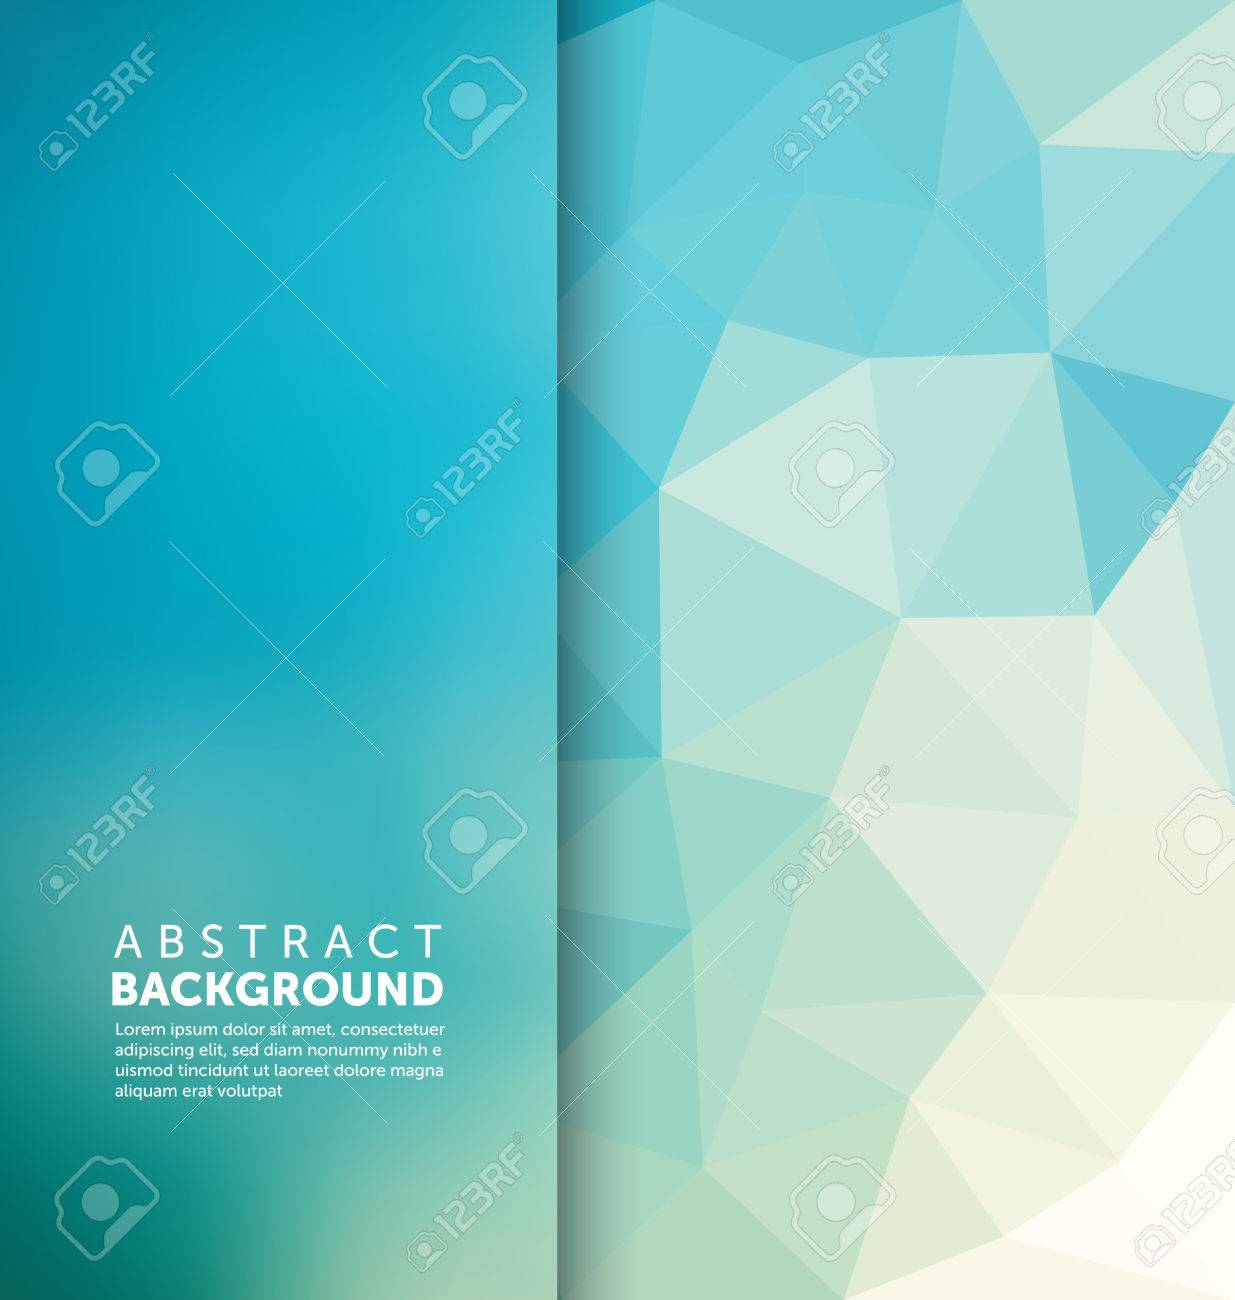 Abstract Background - Triangle and blurred banner design - 45168687